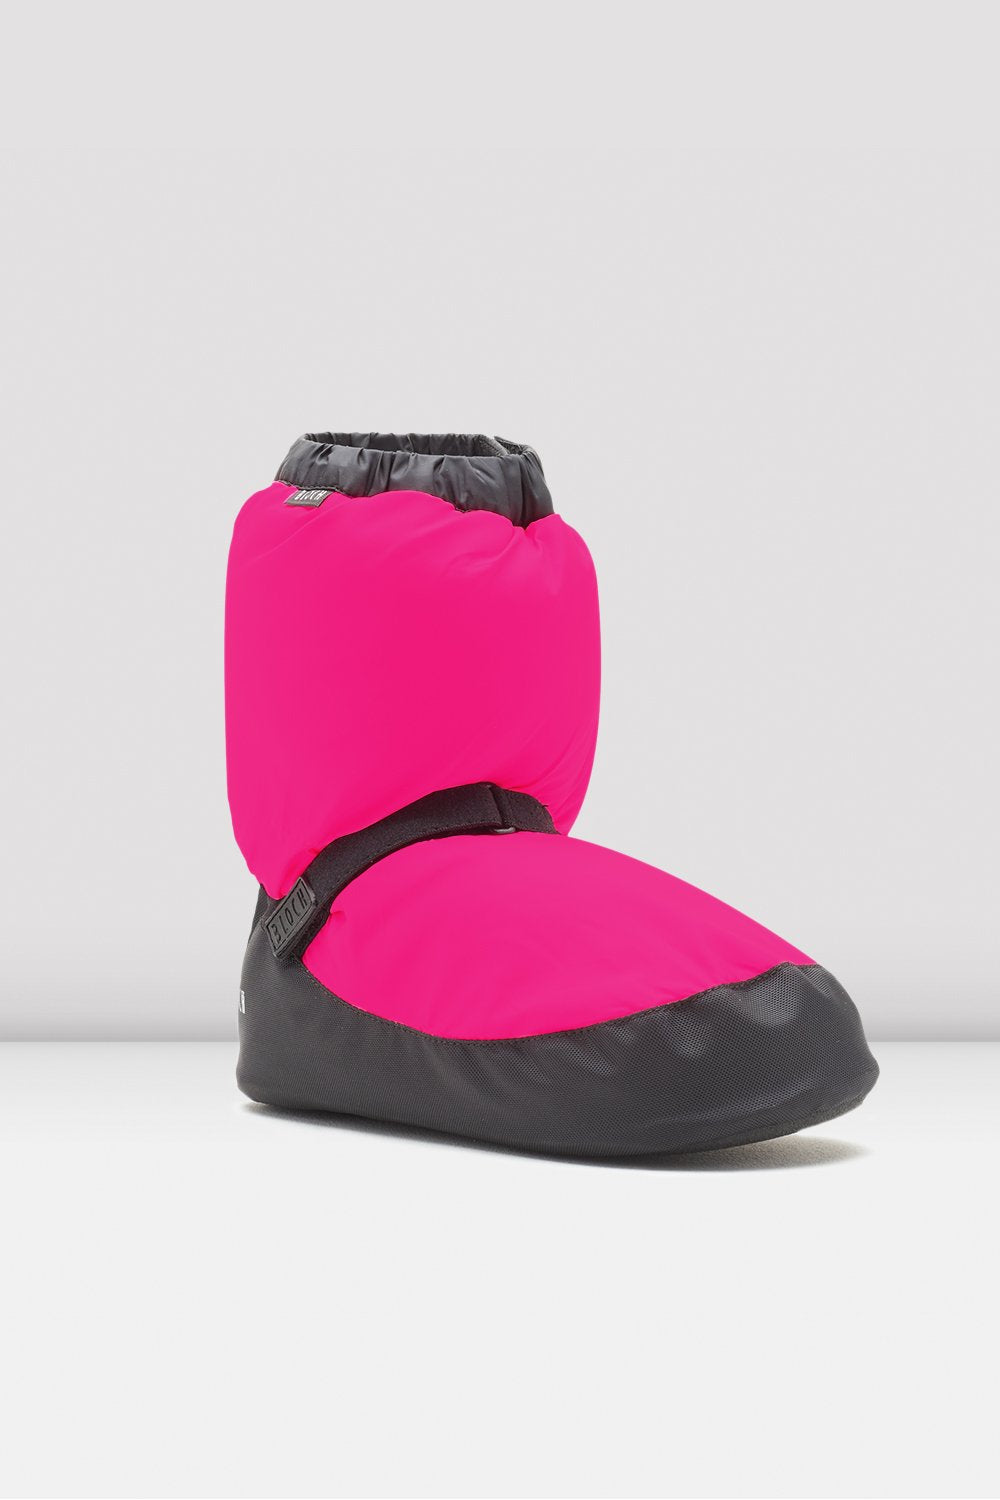 Fluorescent pink nylon Bloch Childrens Warm Up Booties single shoe side view focus on heel of shoe